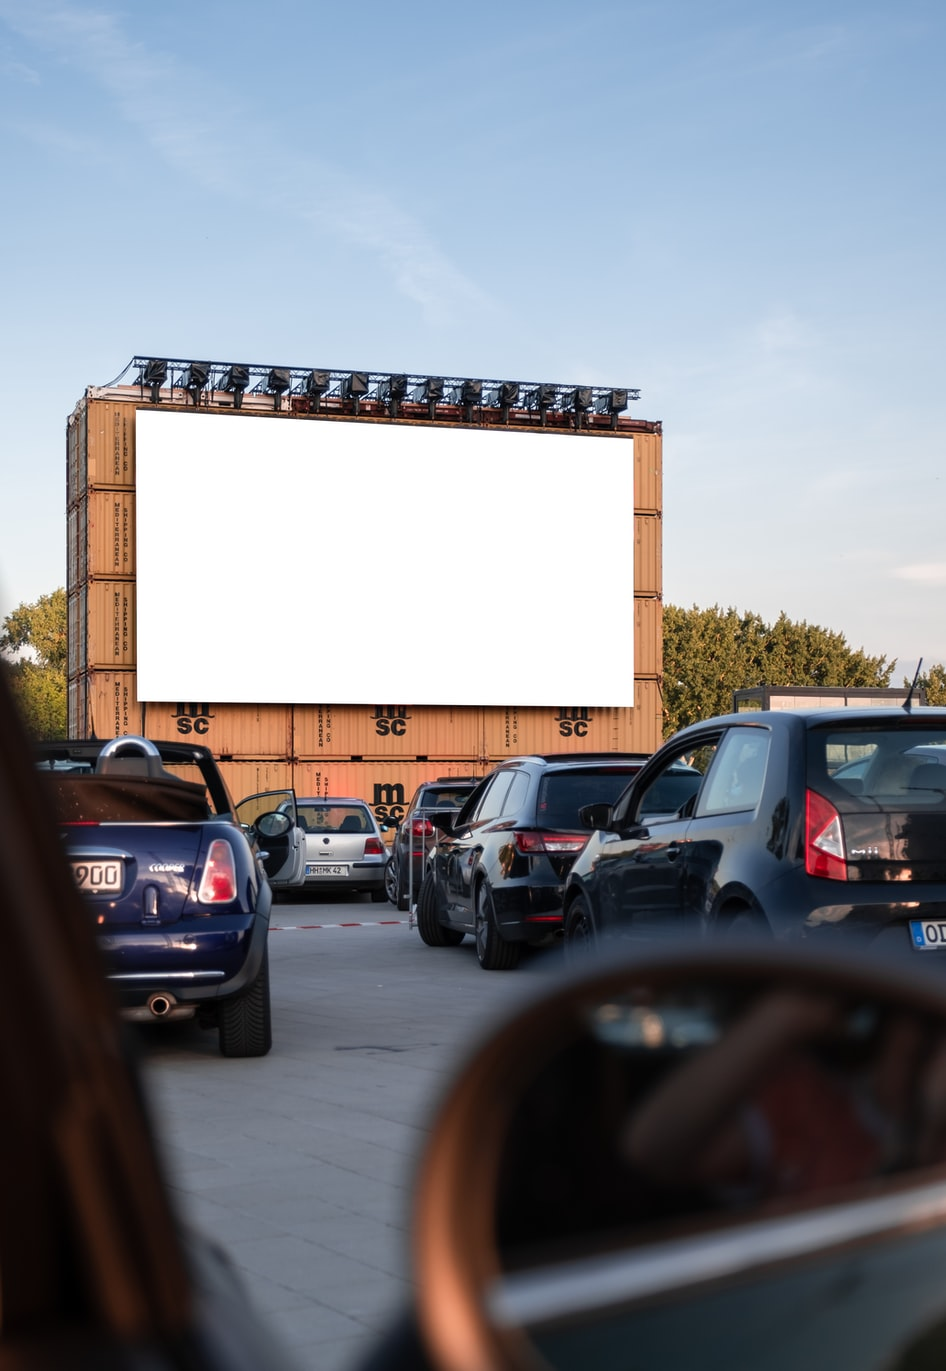 Drive-in theaters have made a resurgence amidst the coronavirus outbreak